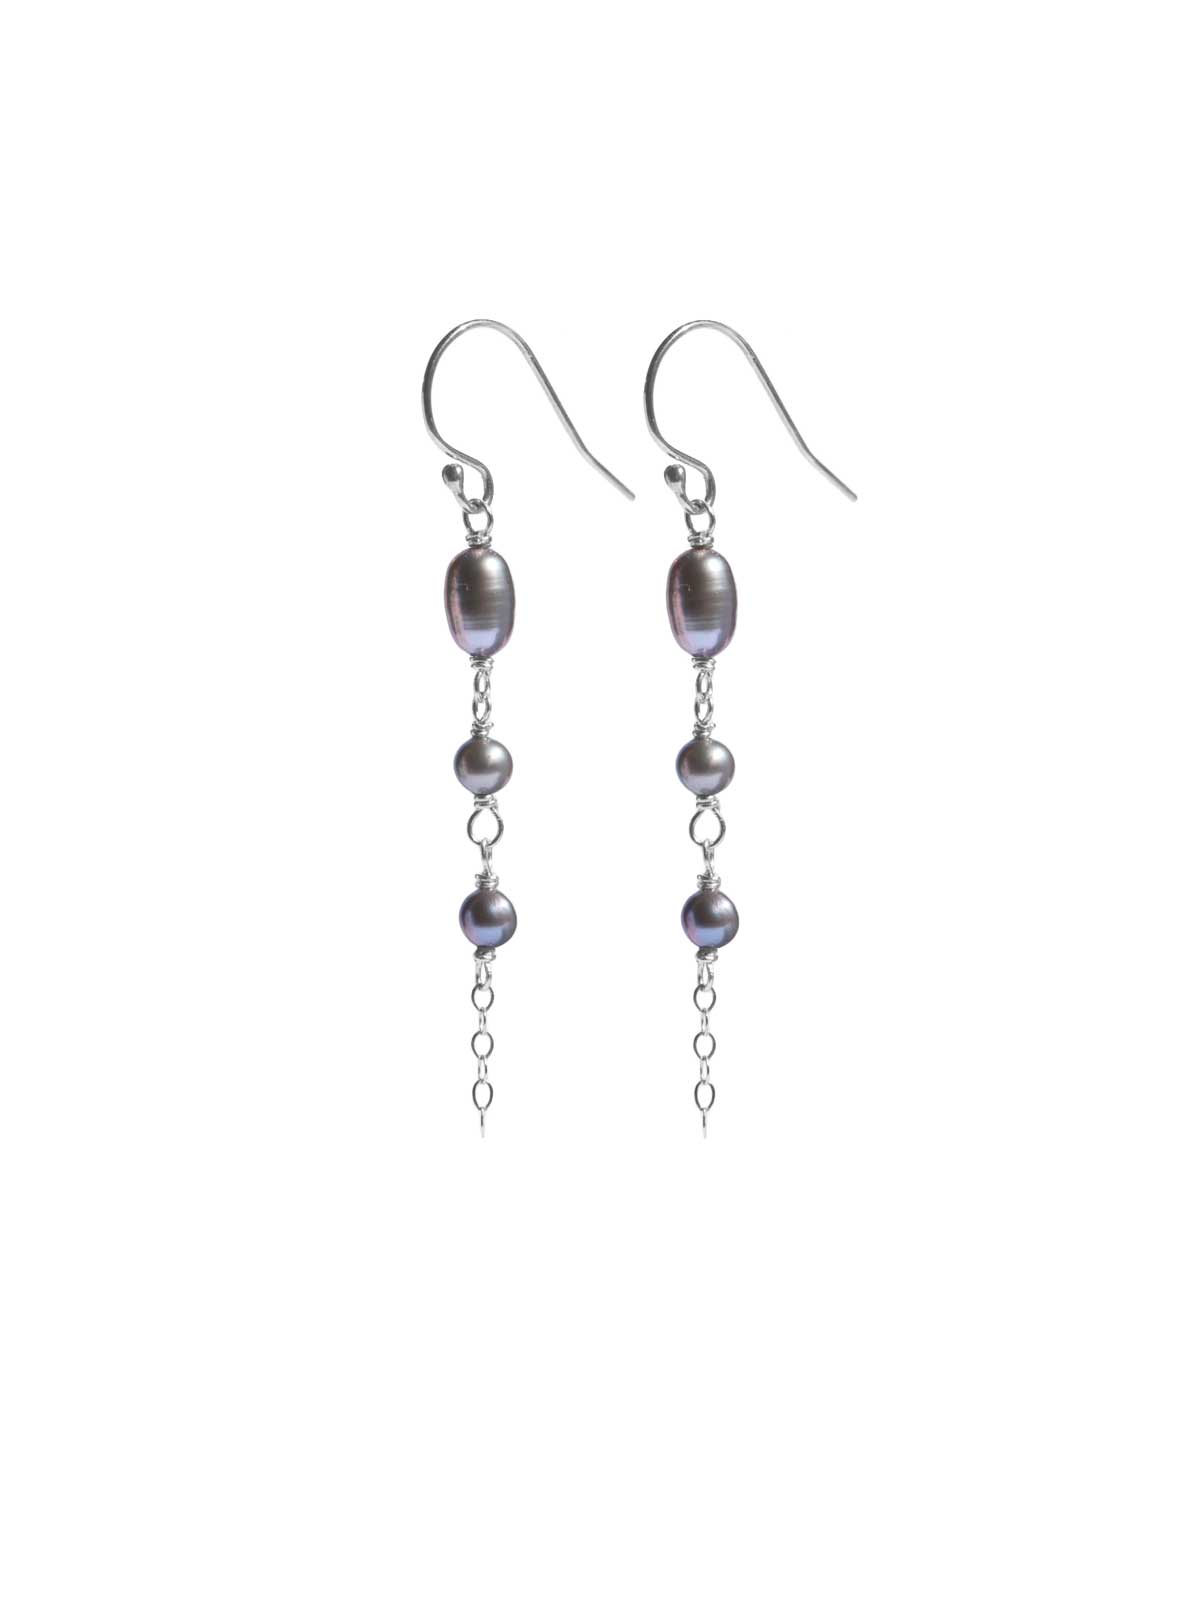 Earrings in Sterling Silver and gray Freshwater Pearls